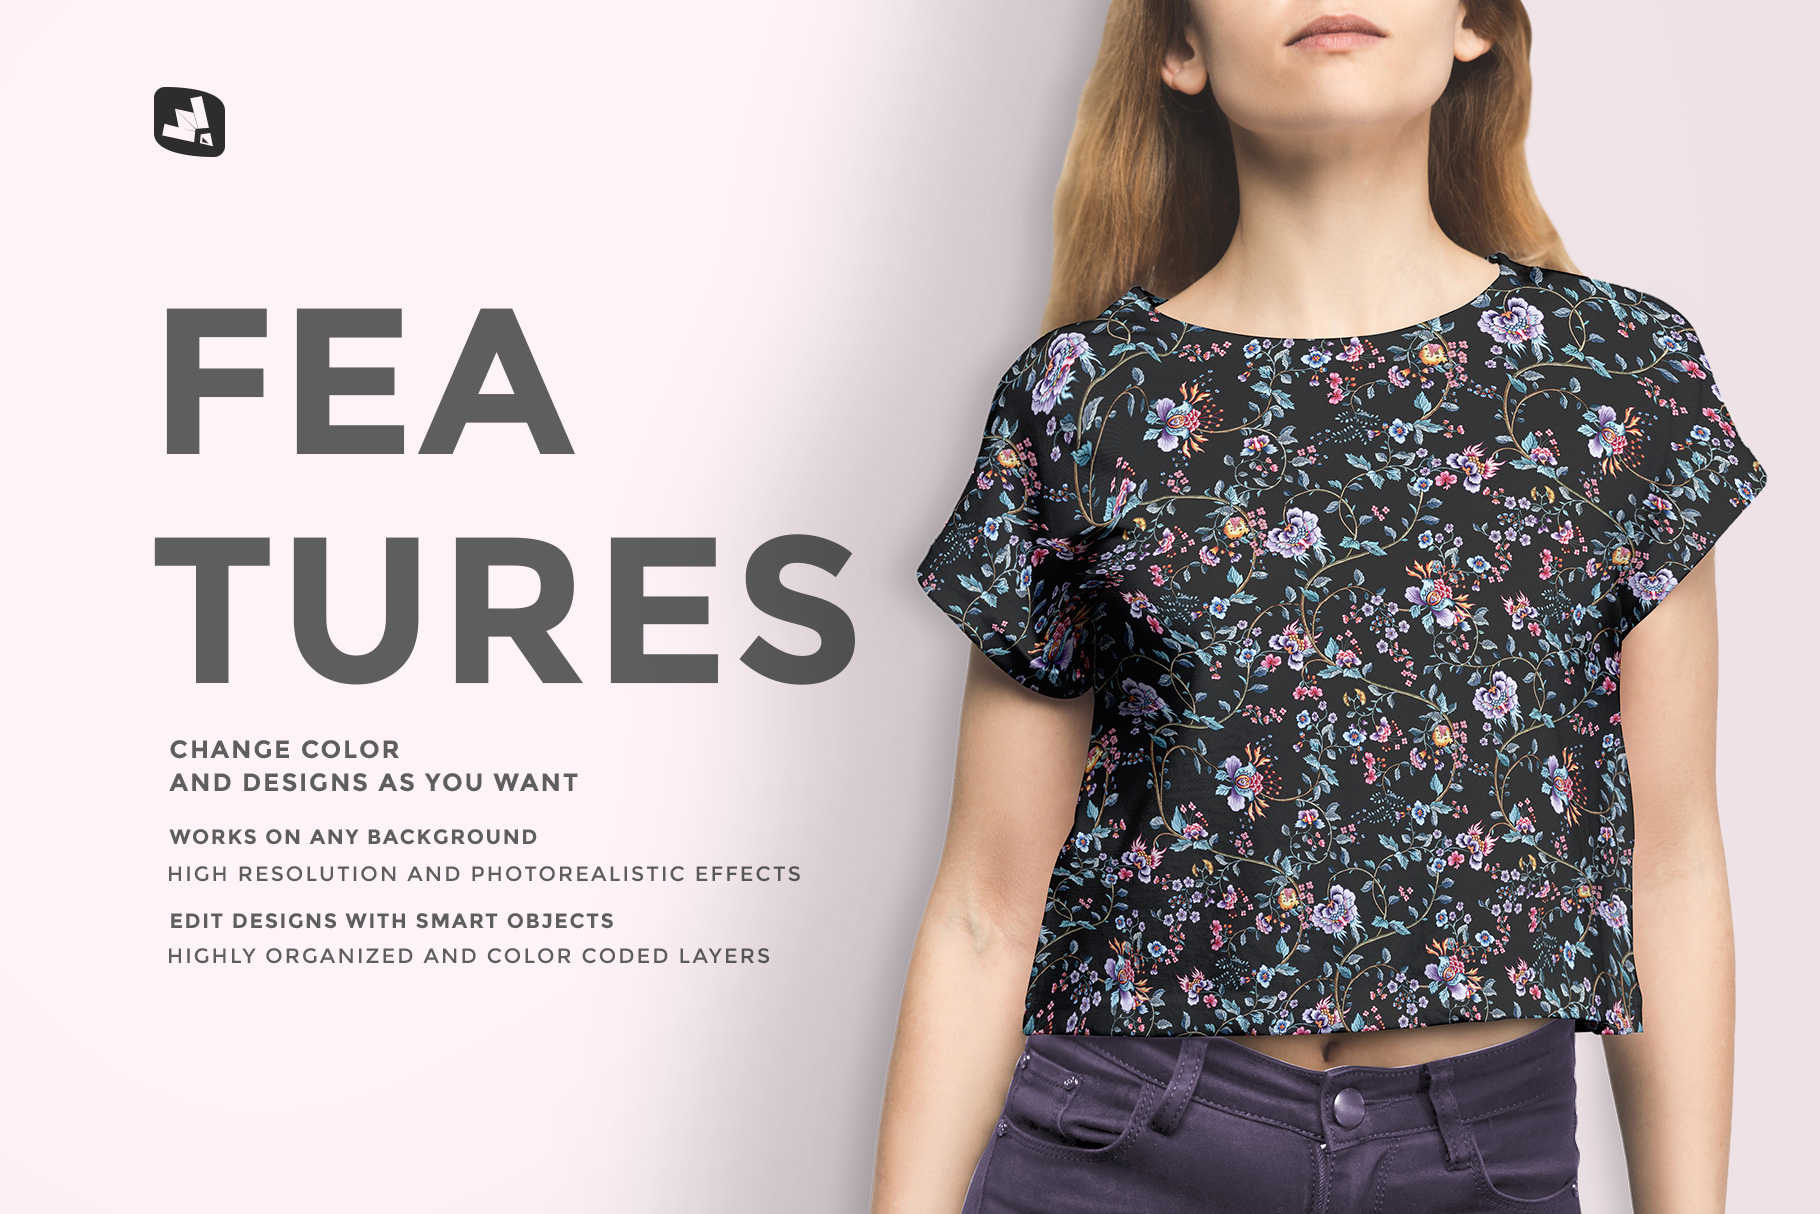 features of the female crop top tshirt mockup